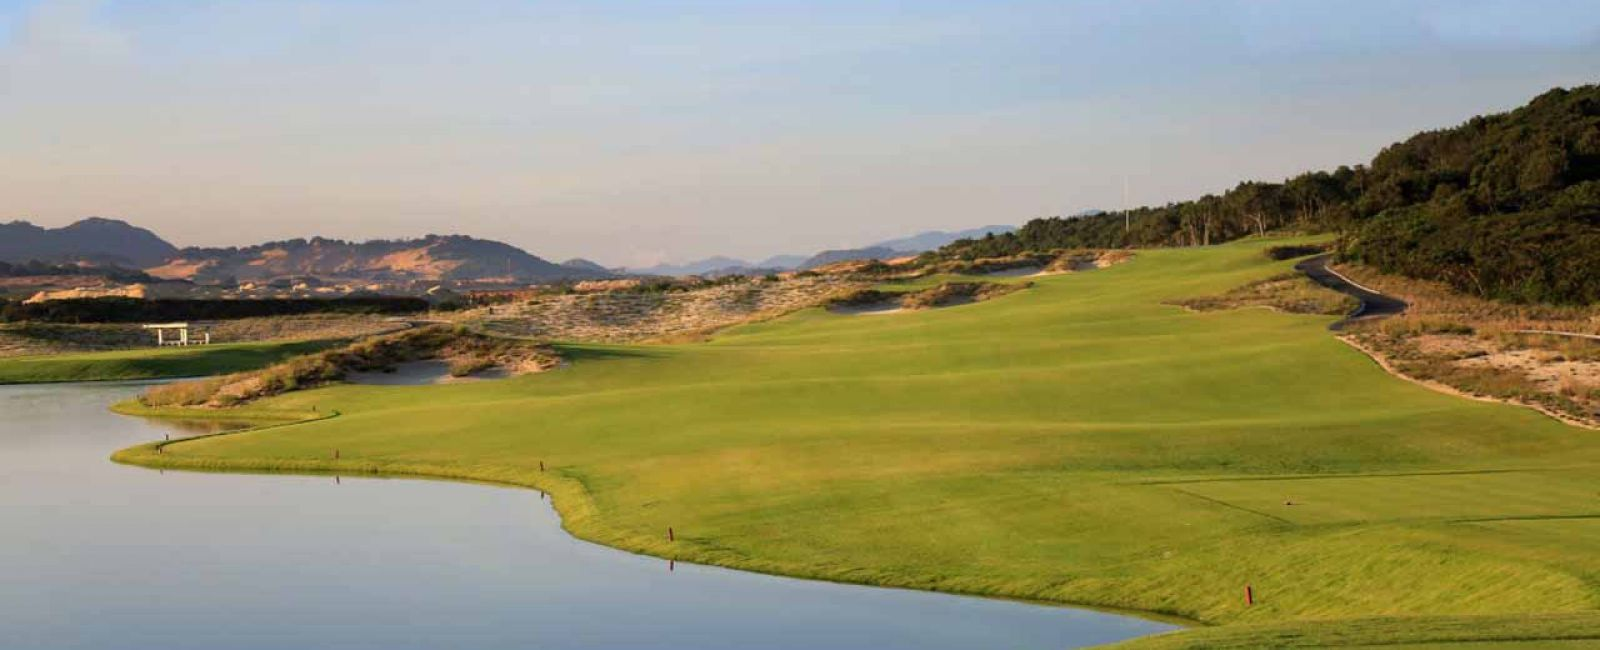 8 Day Nha Trang and Danang Golf & Beaches